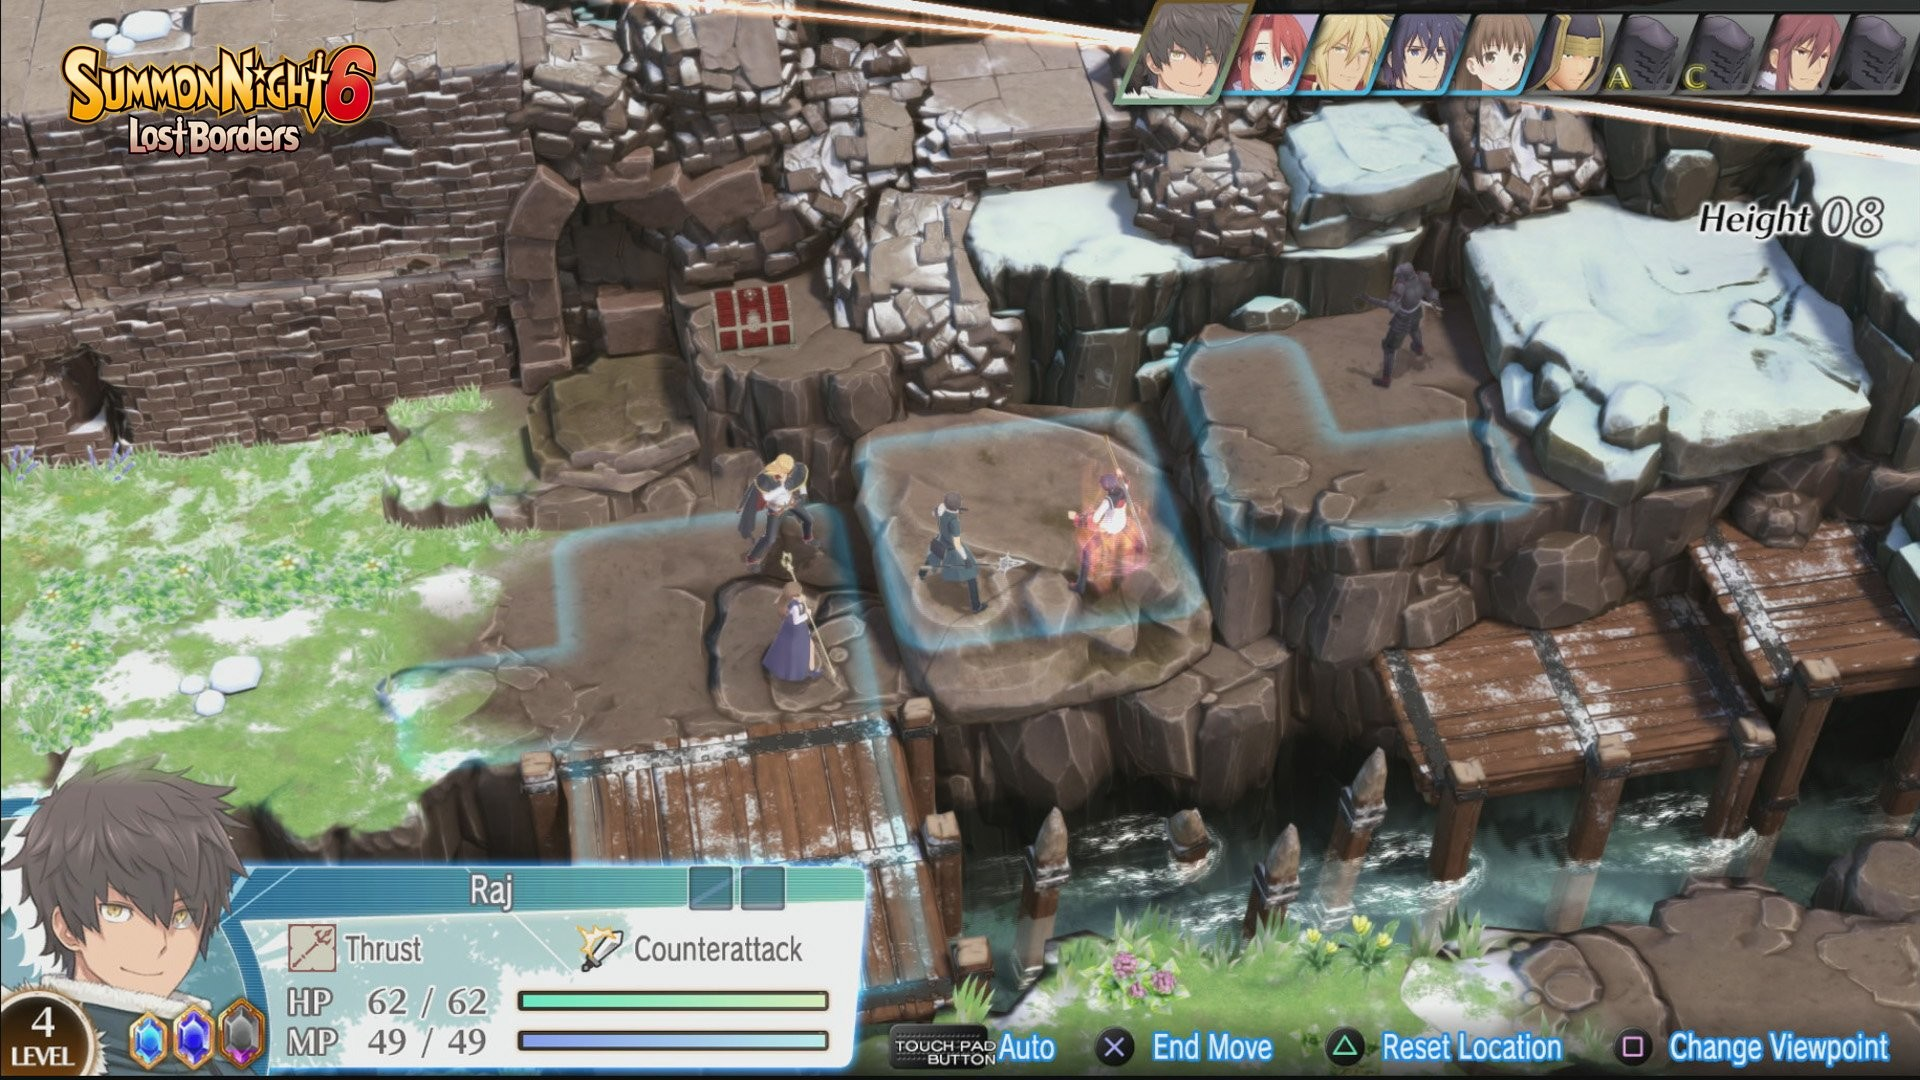 Foto de Summon Night 6: Lost Borders (10/34)